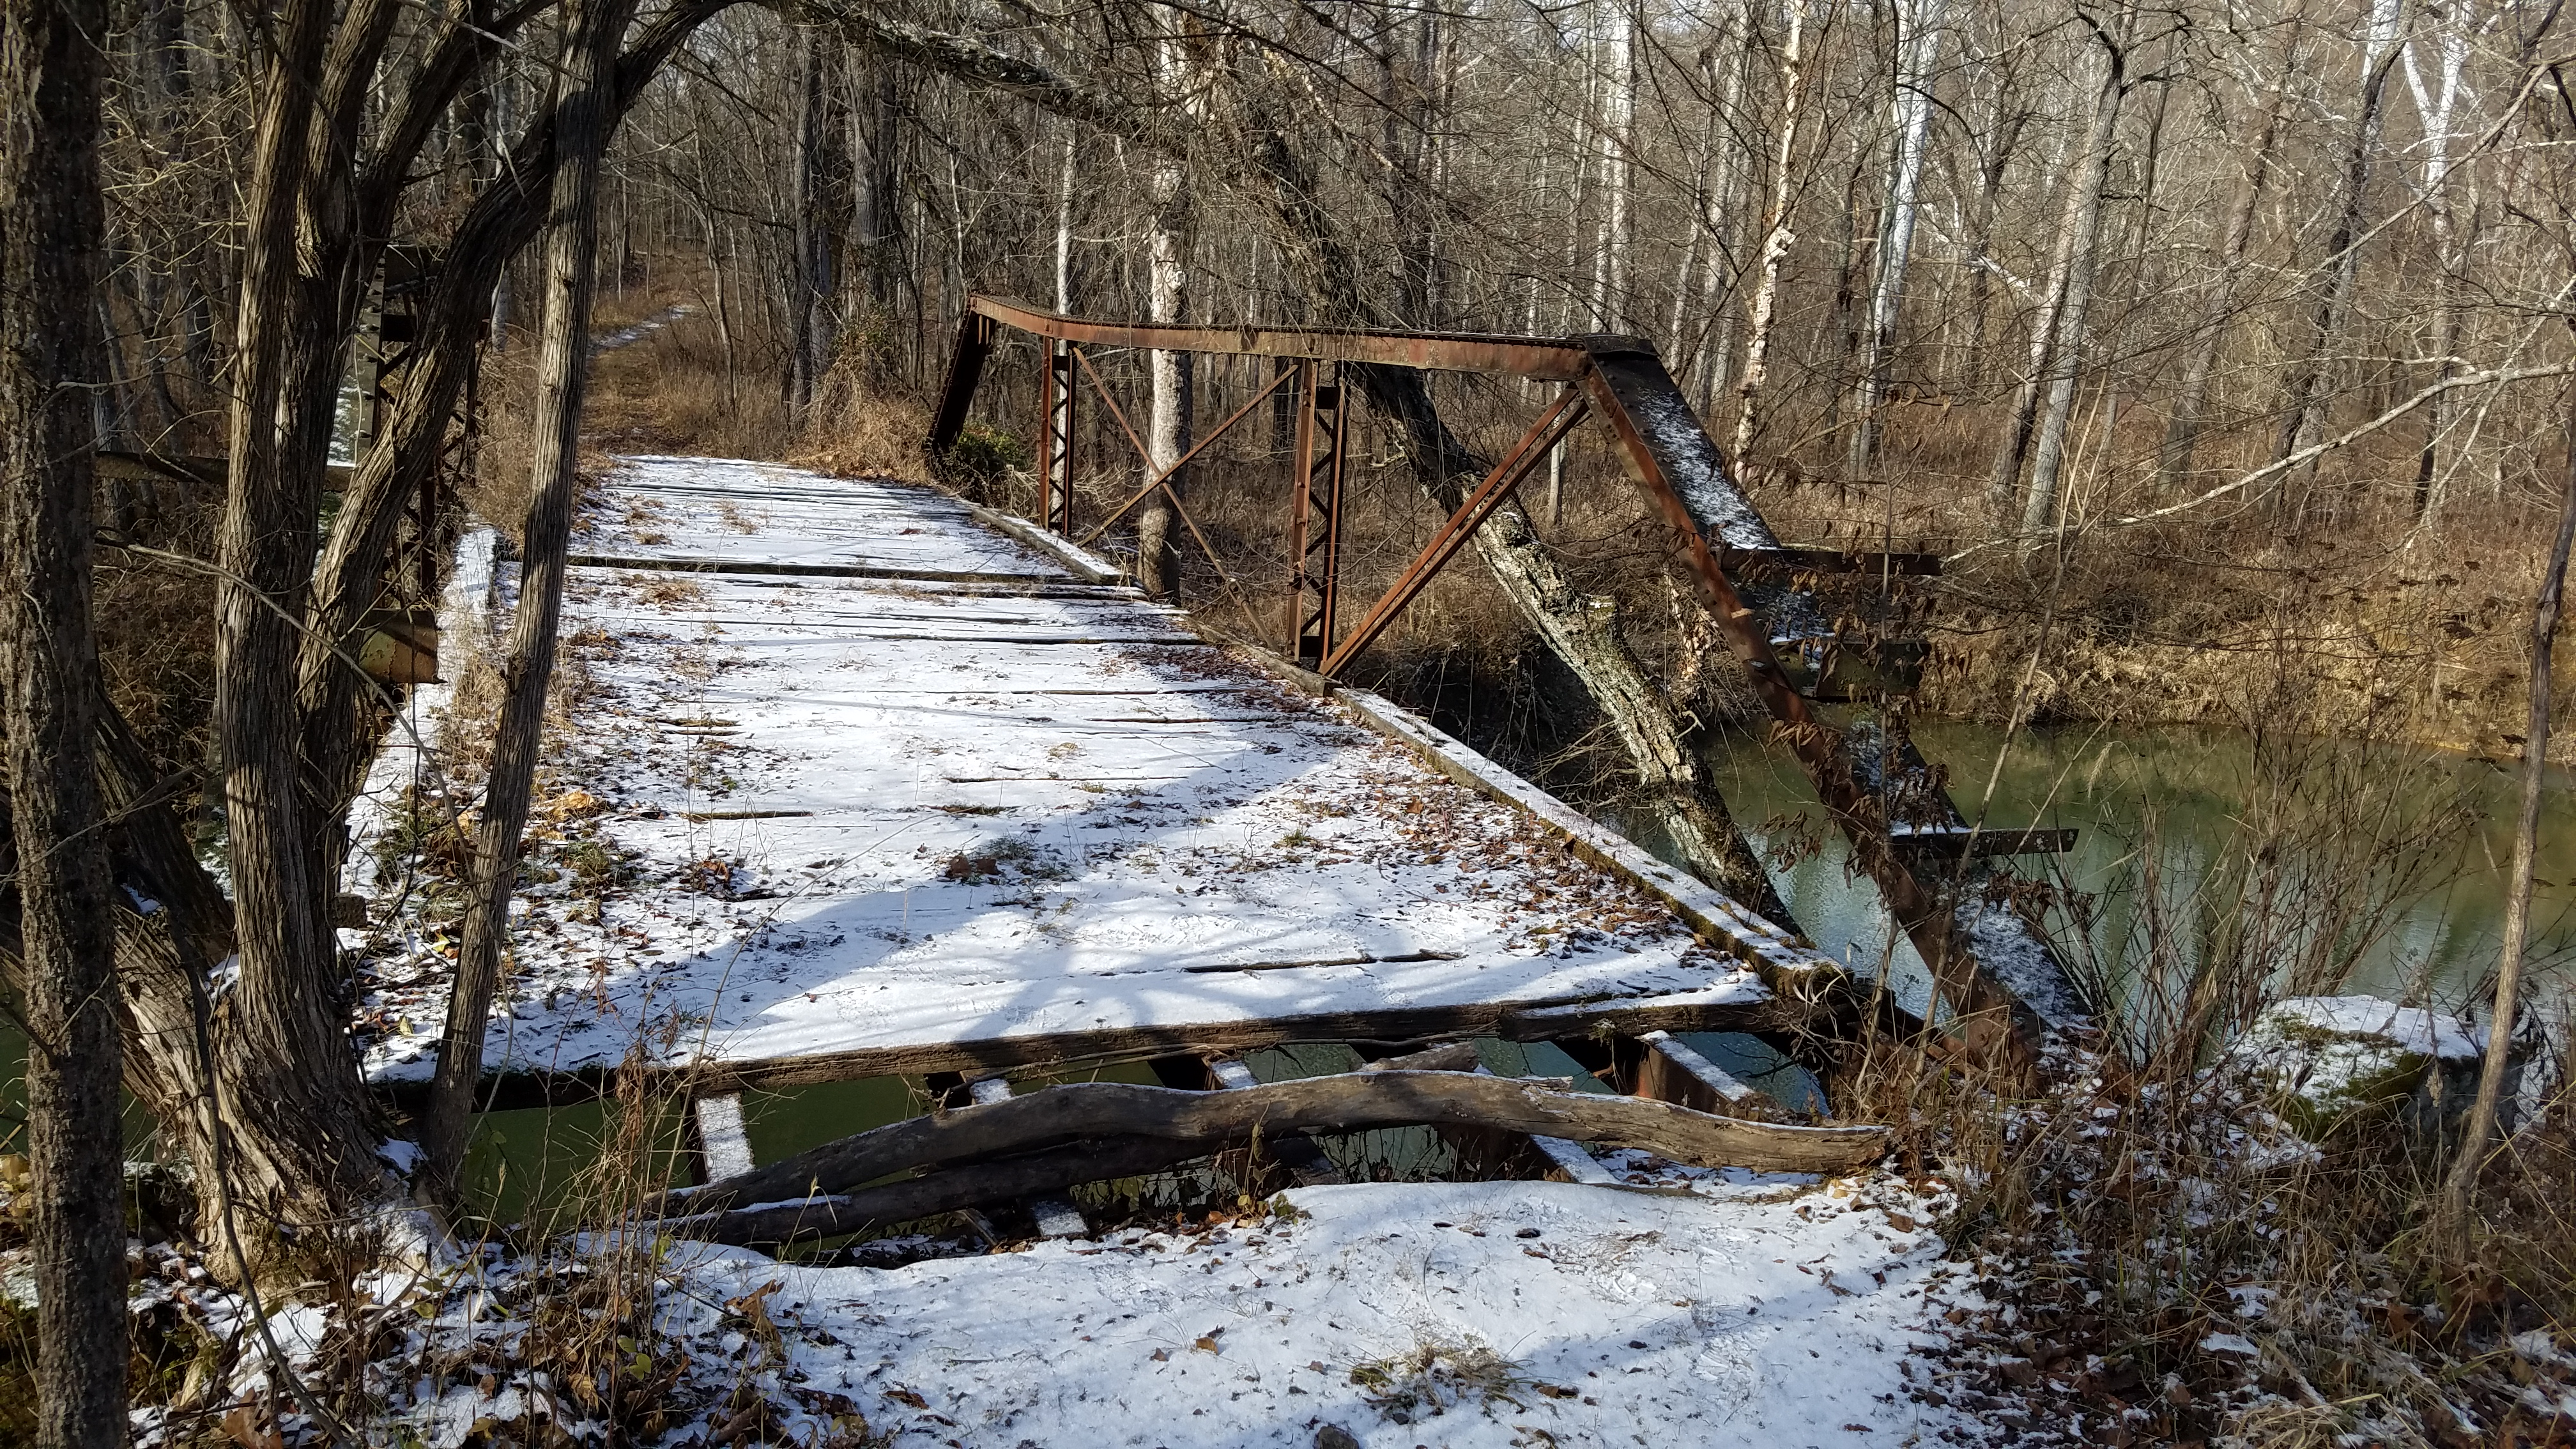 Vinton furnace state forest photo